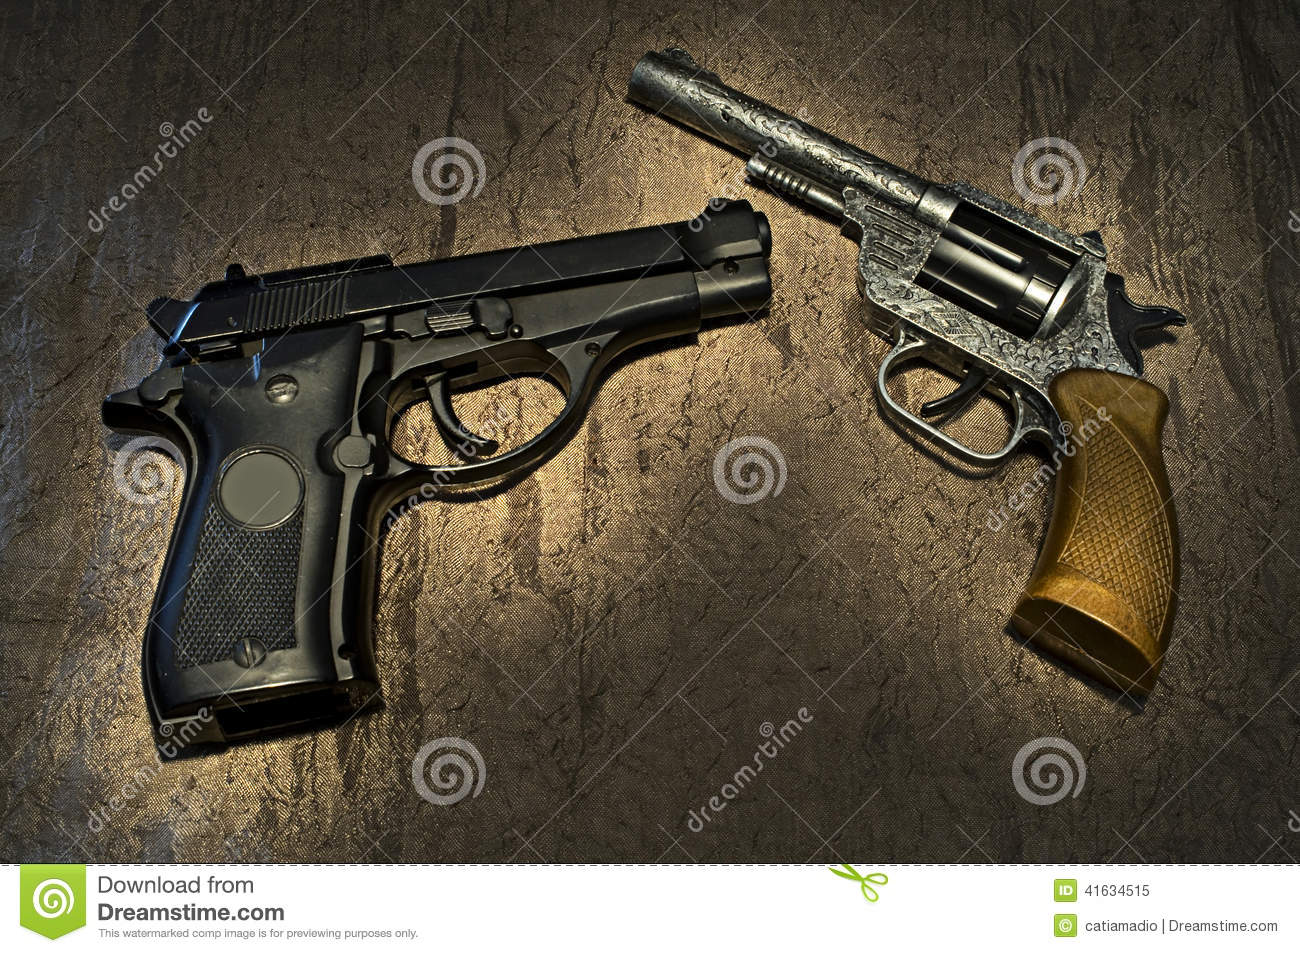 Guns Background Stock Photo - Image: 41634515